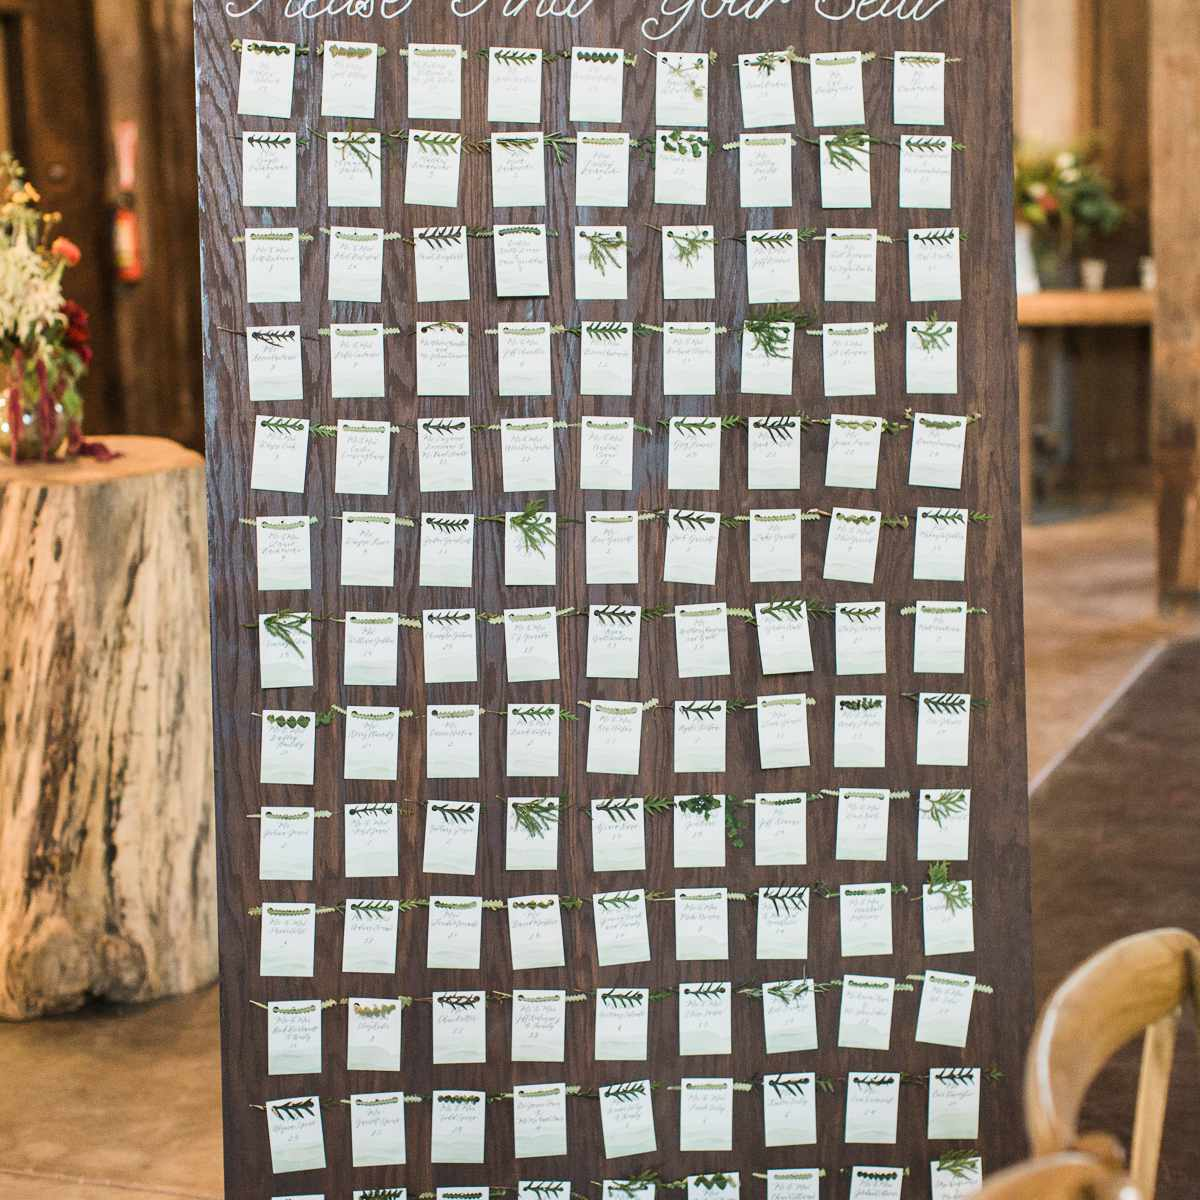 <p>Wood seating chart</p><br><br>